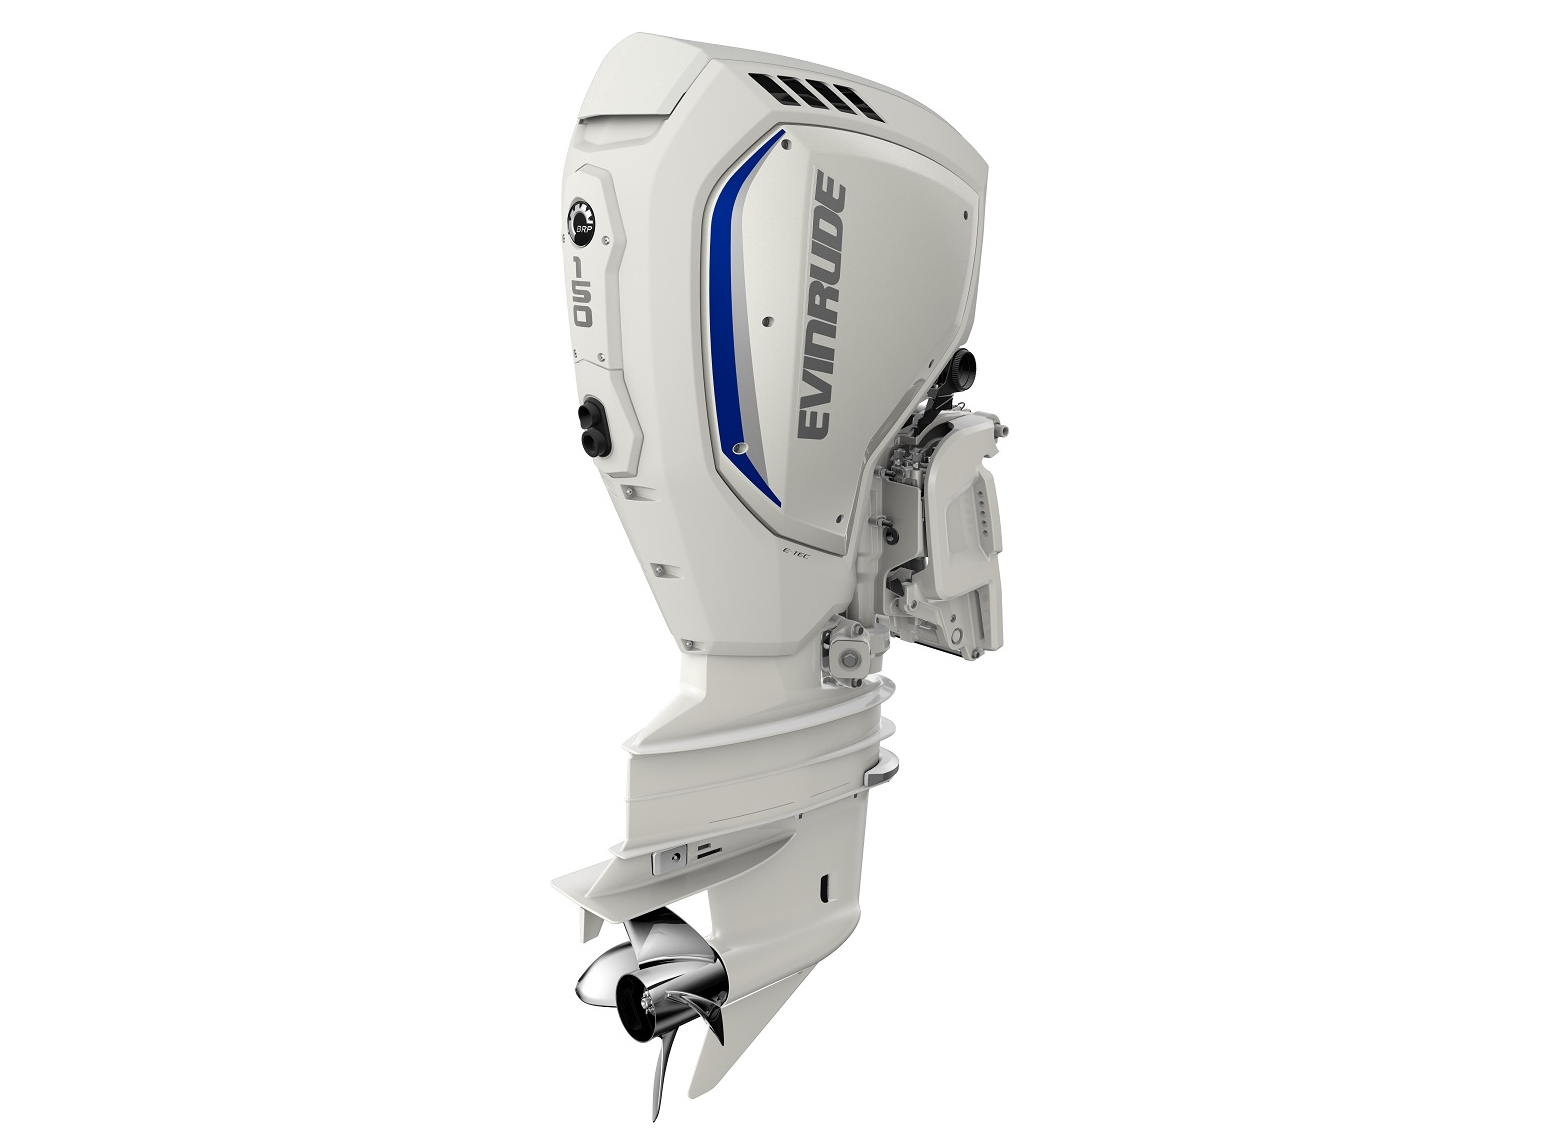 The family grows: meet the new three cylinder Evinrude E TEC G2